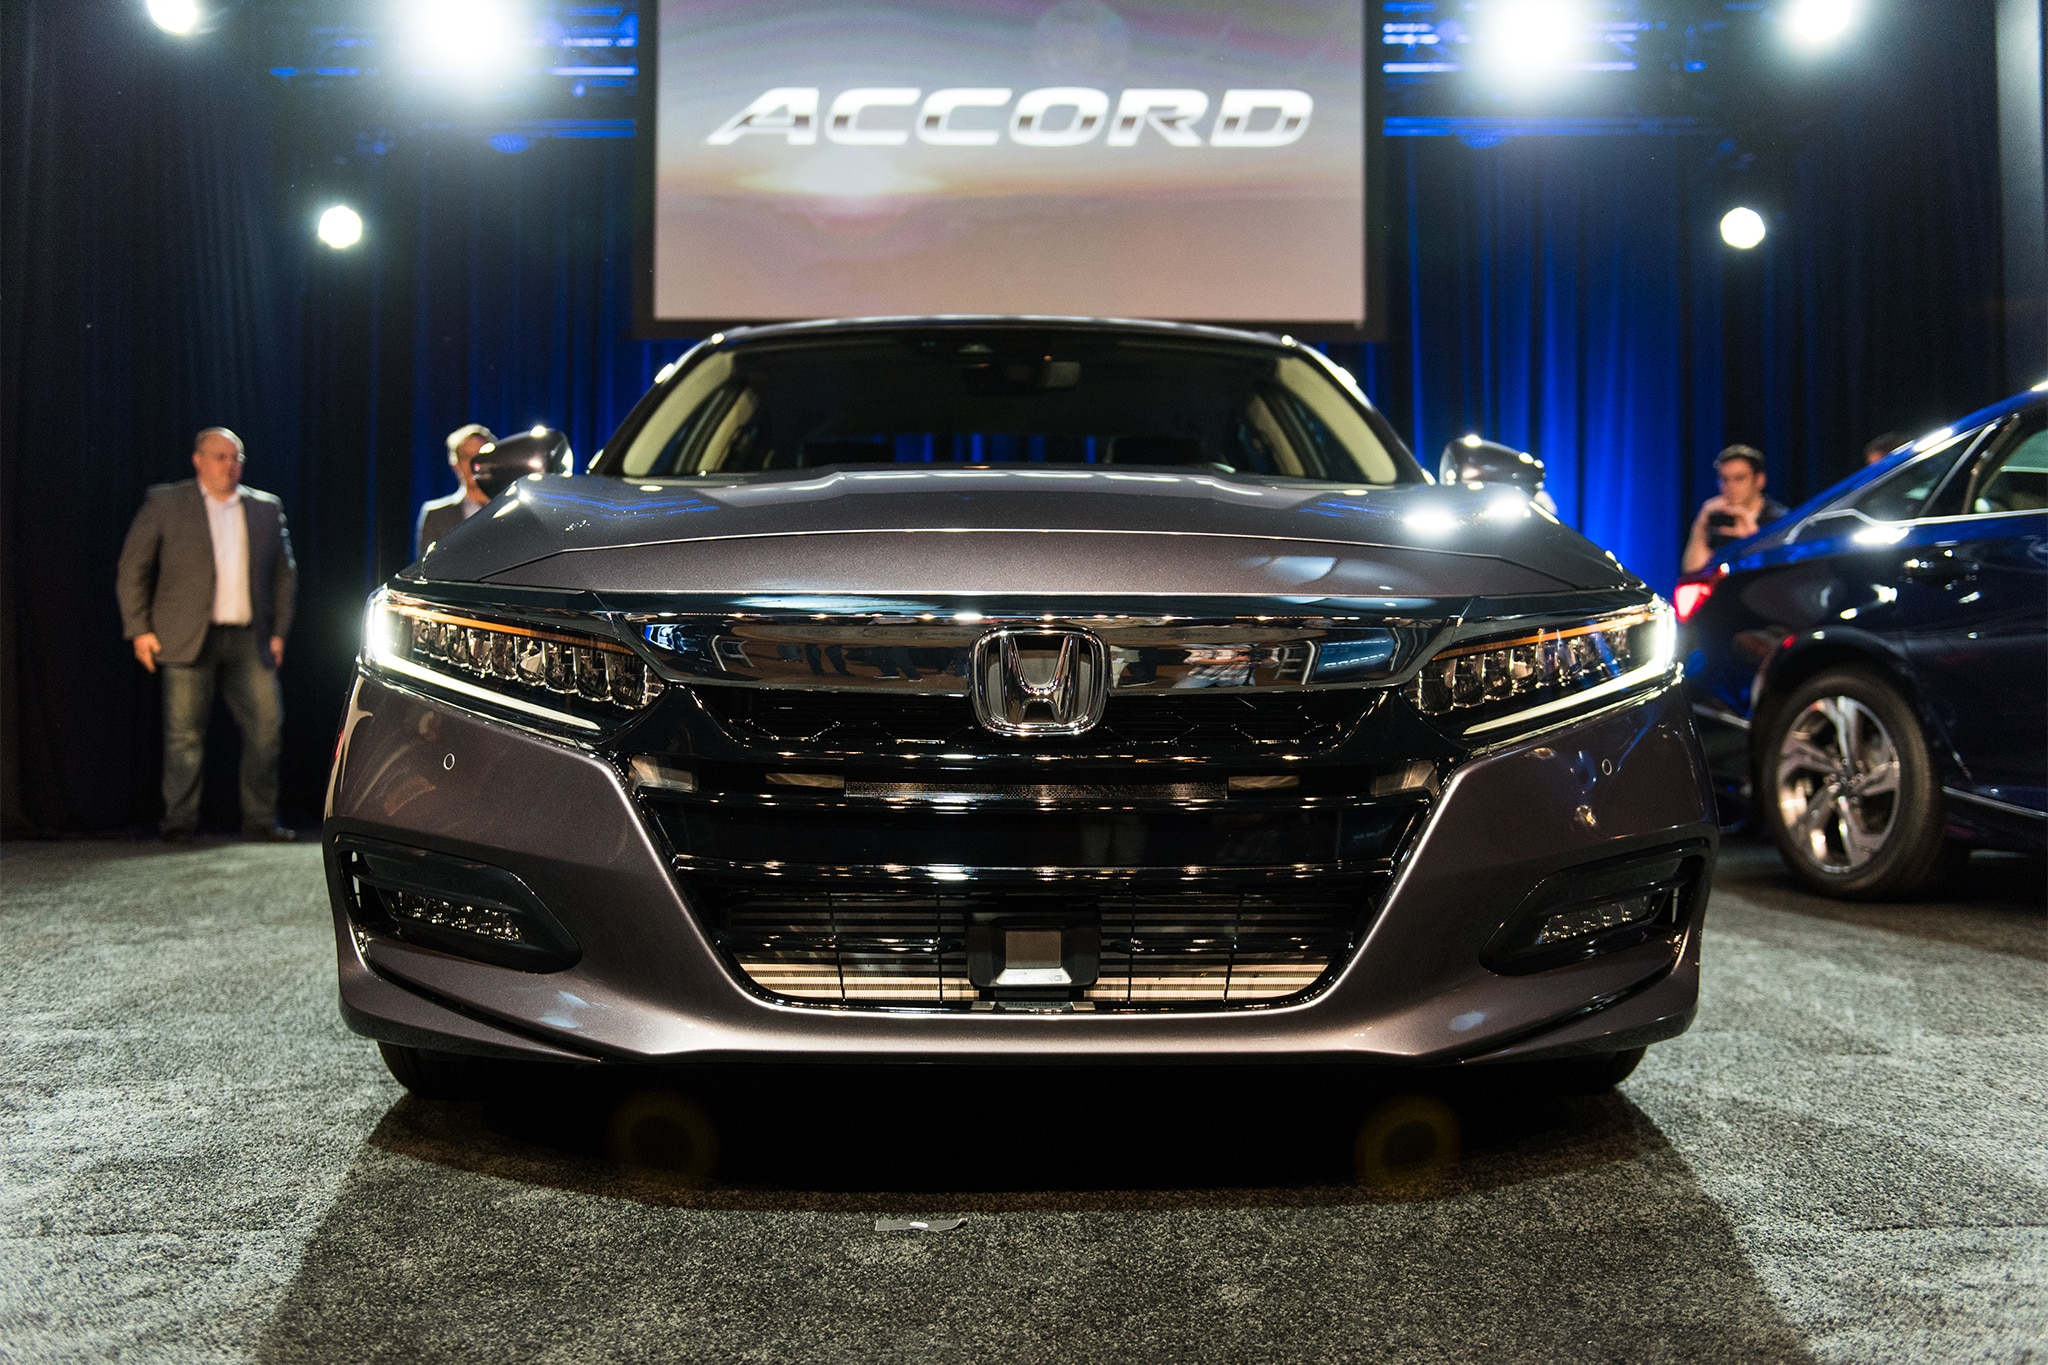 Honda Accord Debuts With Turbo Engines, 10-Speed Transmission